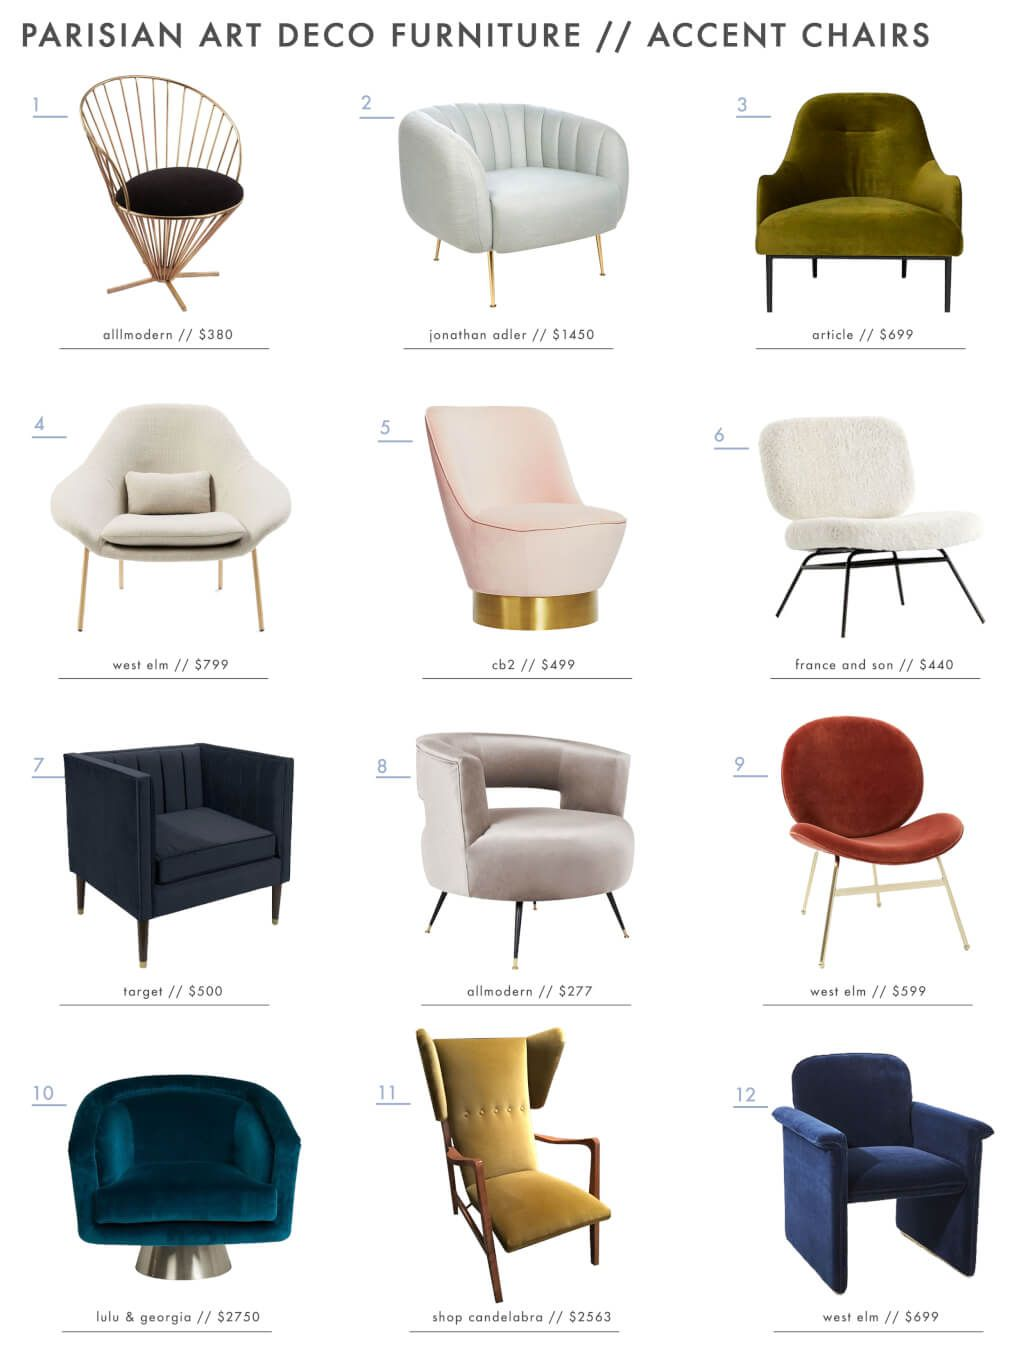 Achieving The Parisian Art Deco Style Furniture With Images